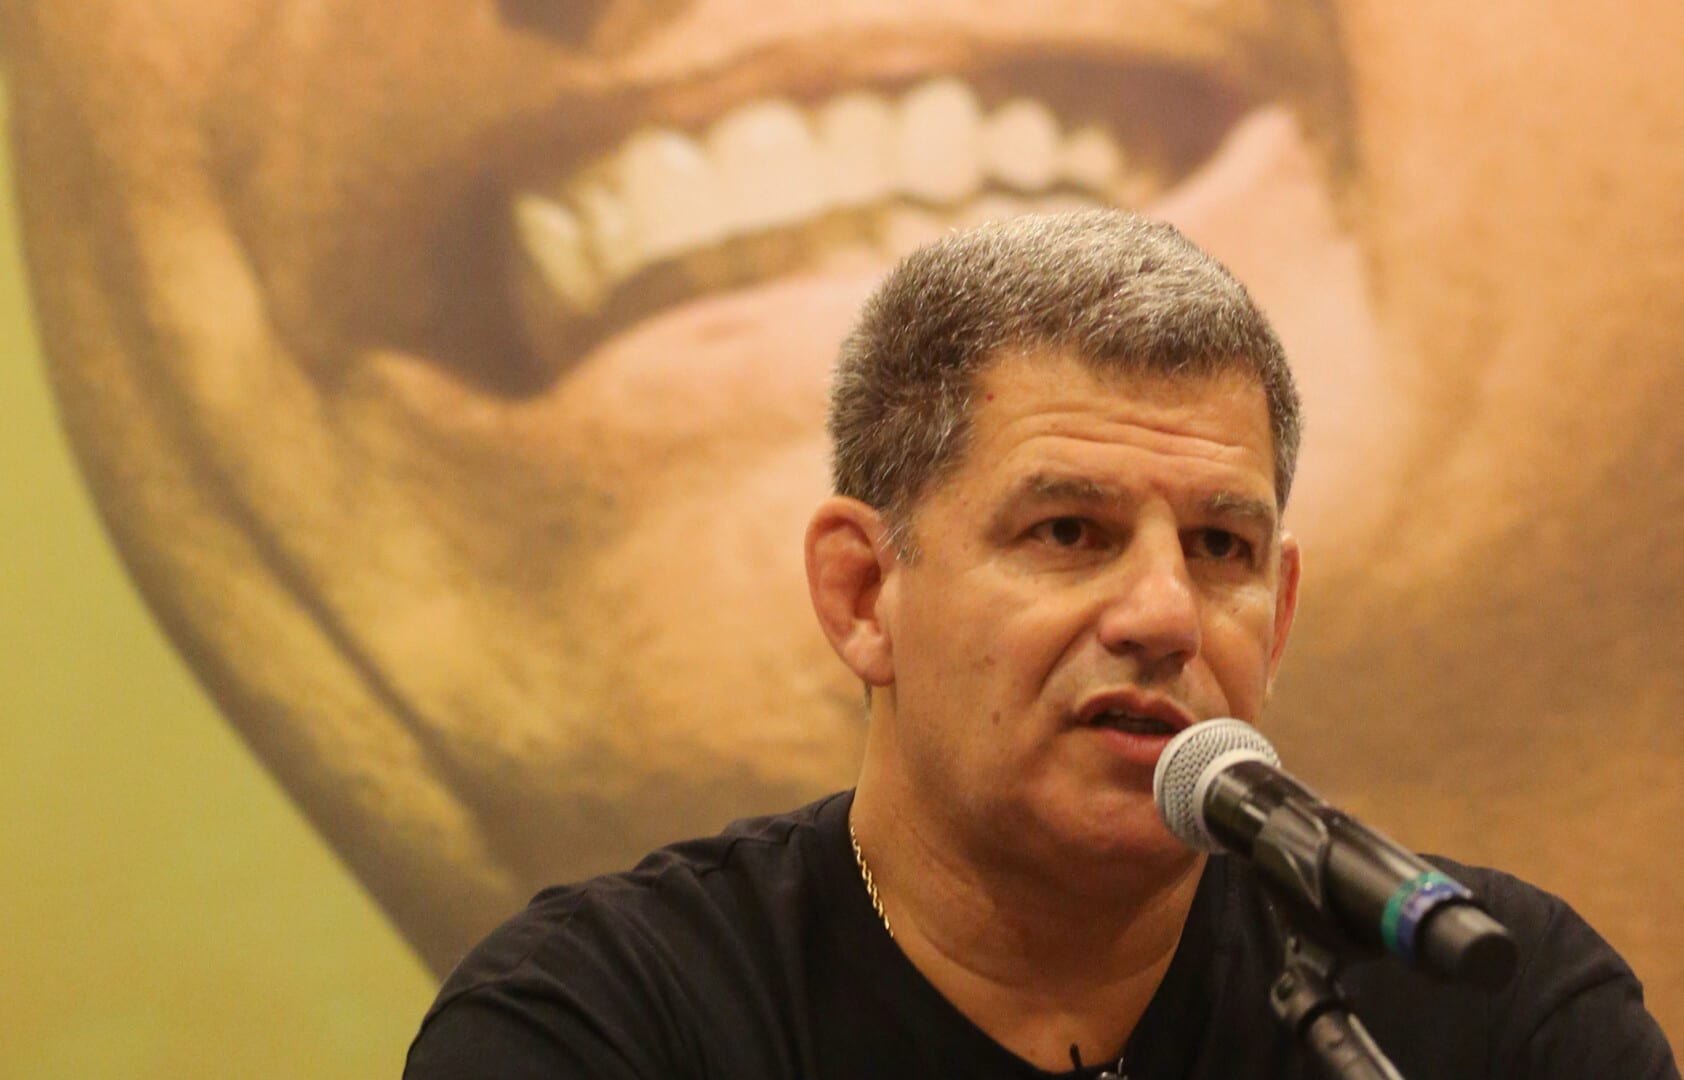 Bebianno, President of the Social Liberal Party talks about Jair Bolsonaro, far-right lawmaker and presidential candidate during a news conference in Rio de Janeiro